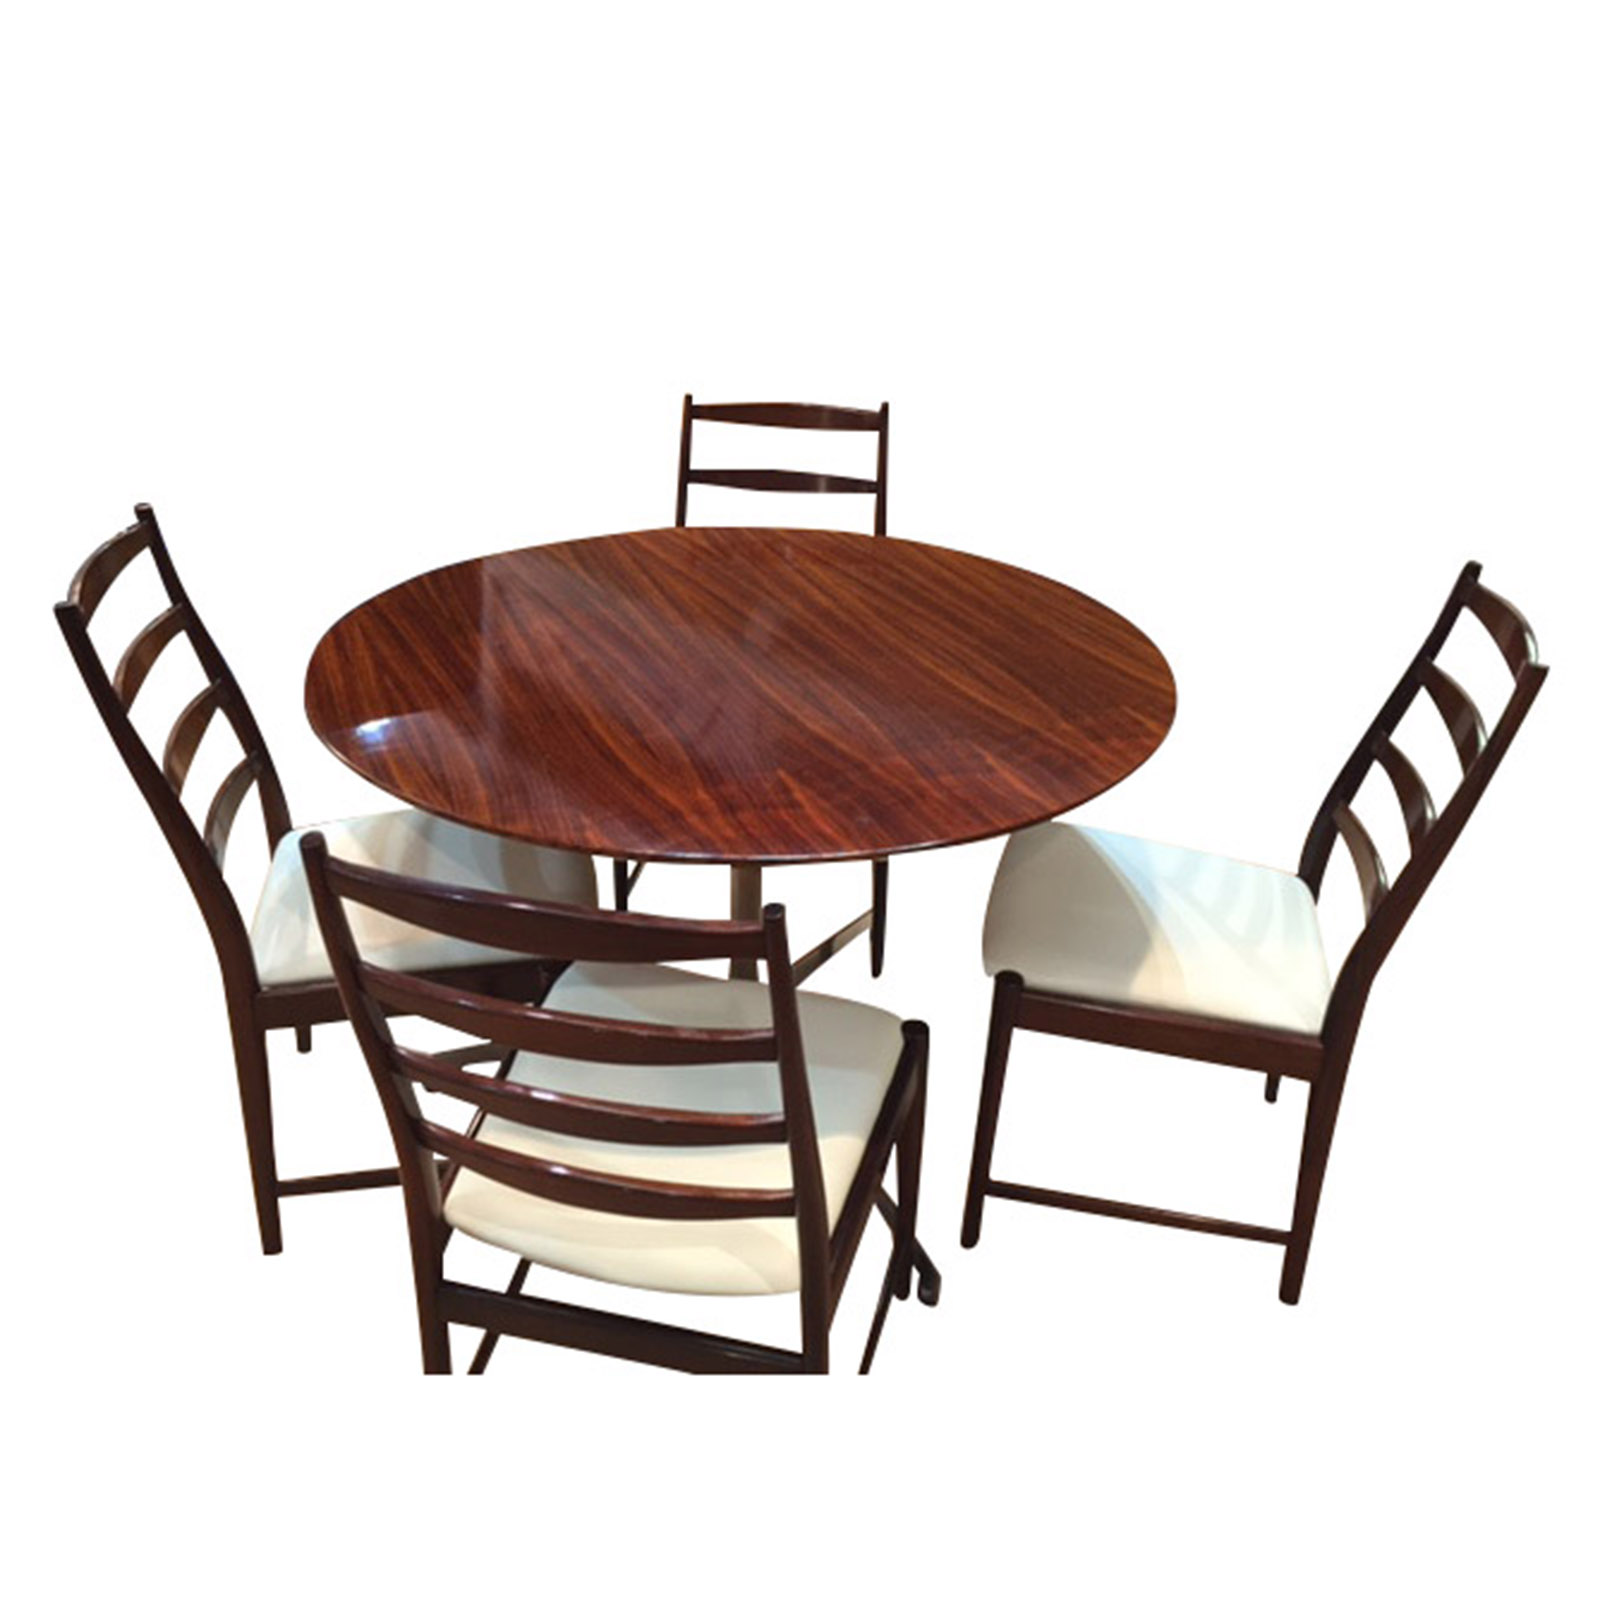 Very Smart Vintage Rosewood Rise and Fall Dining Table